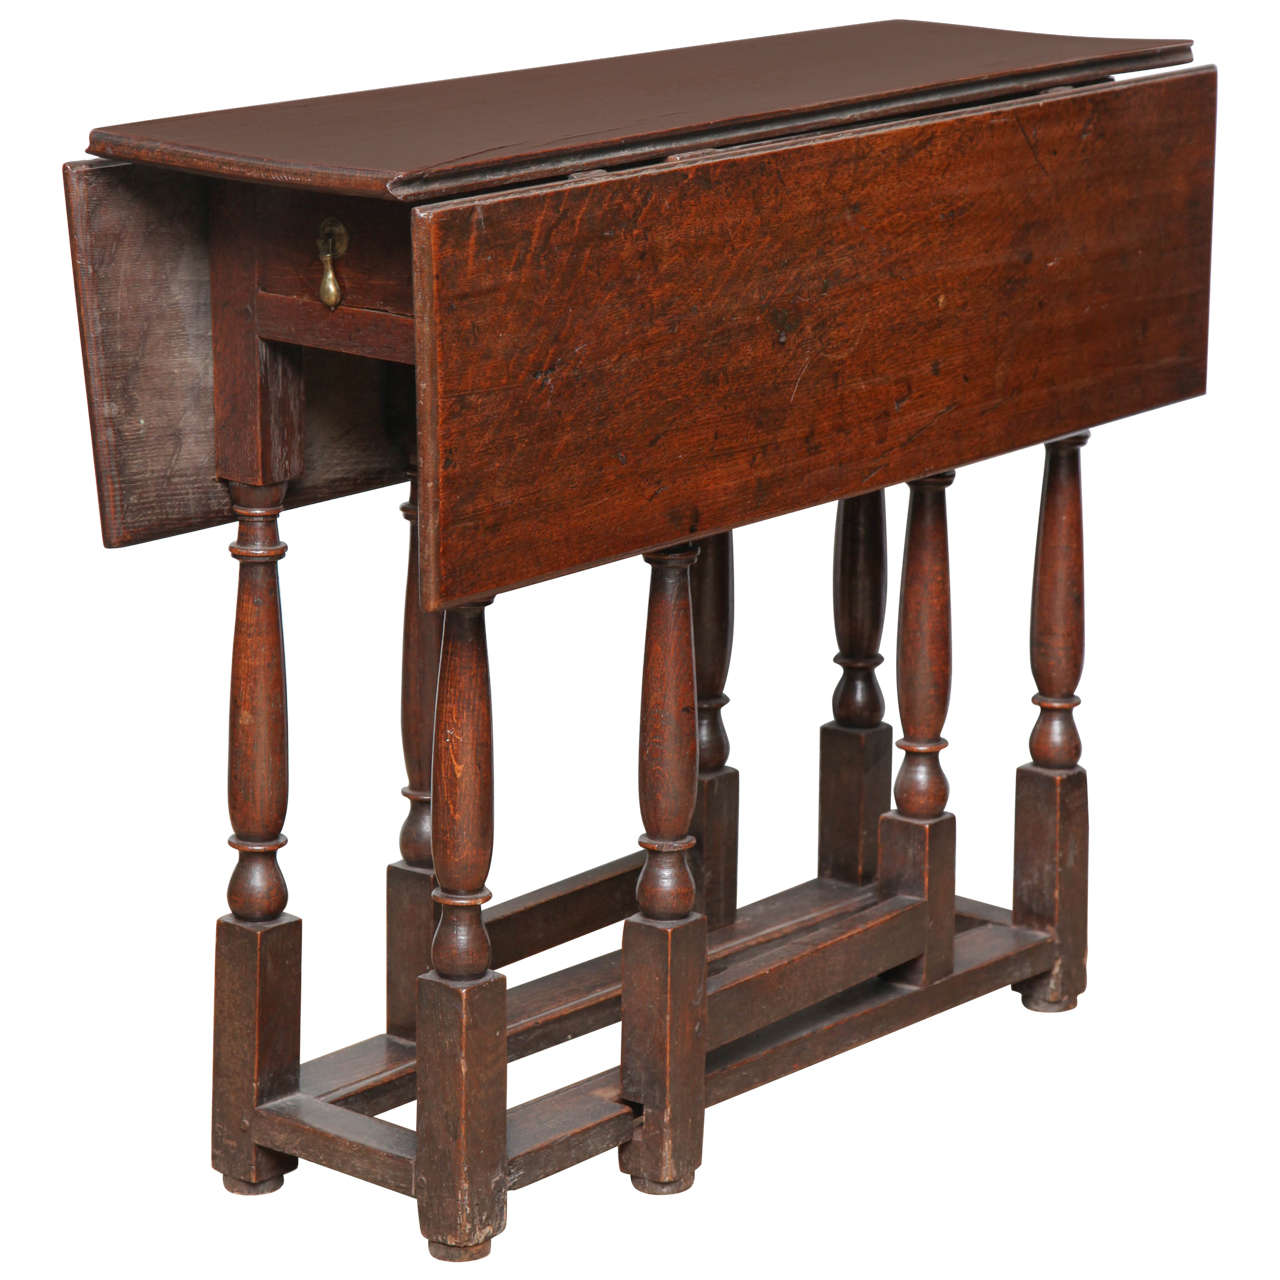 English early 18th century oak gate leg table at 1stdibs for Gatehouse furniture